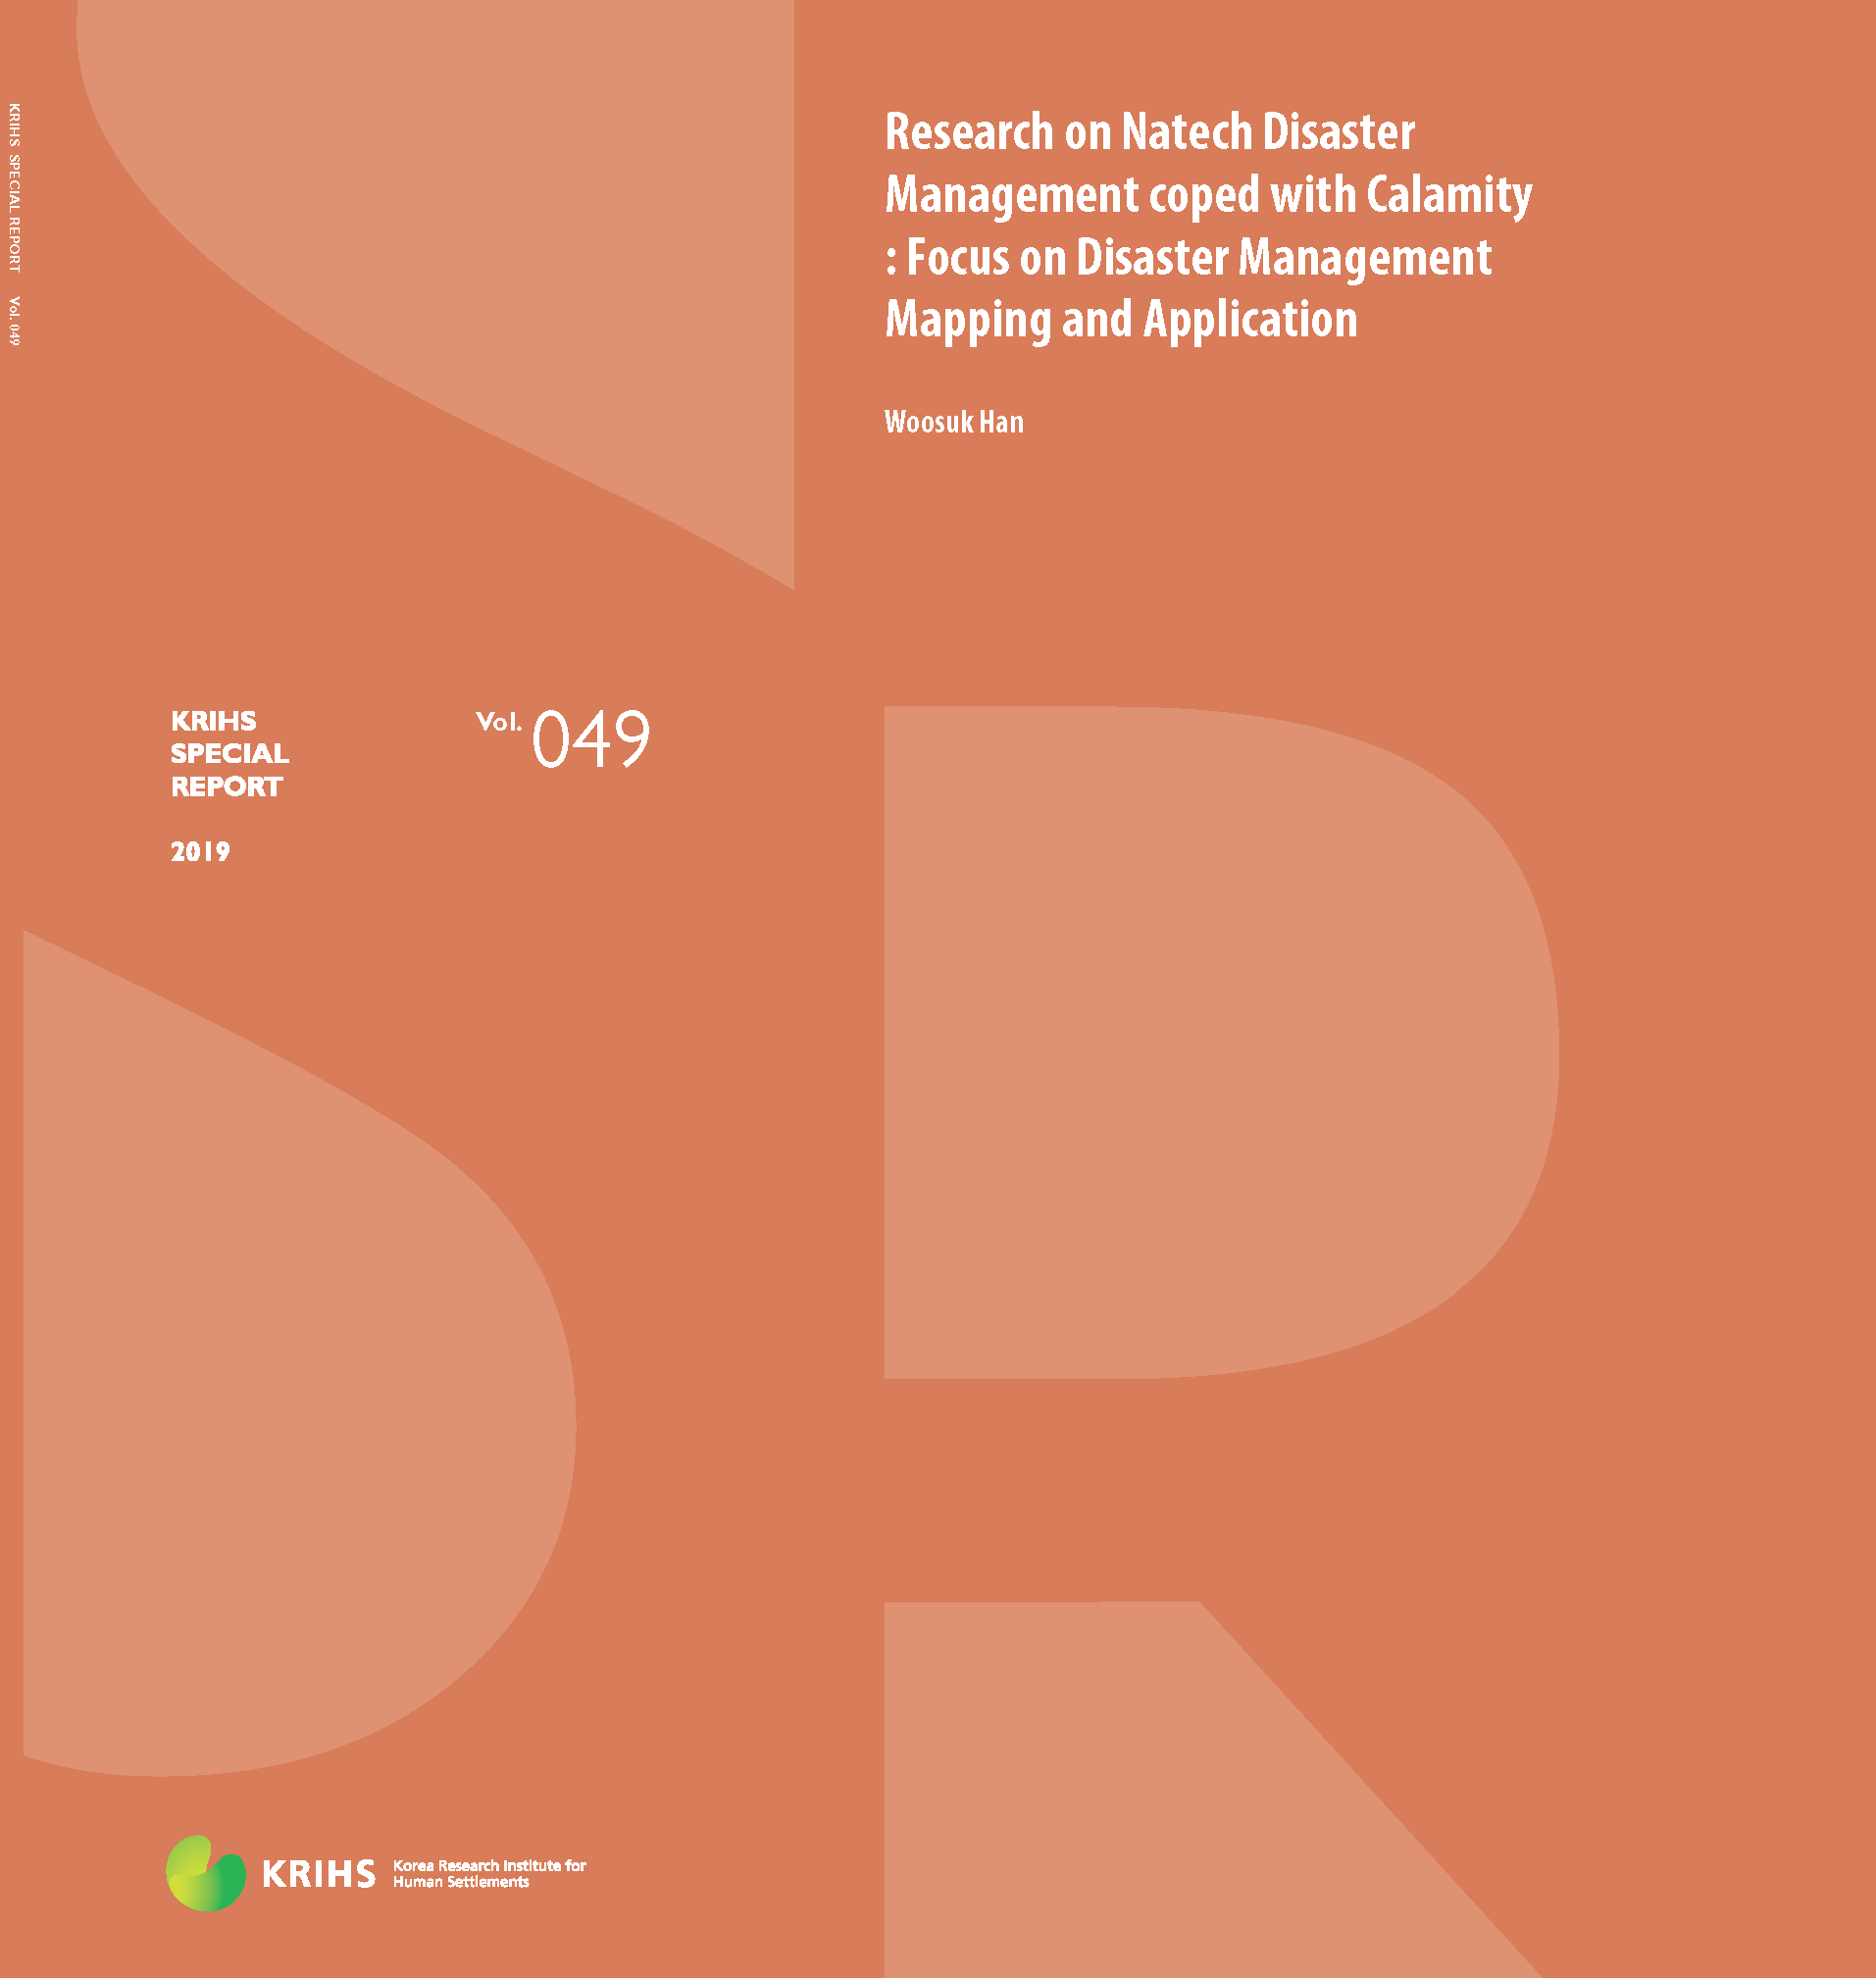 [KRIHS SPECIAL REPORT 49] Research on Natech Disaster Management coped with Calamity: Focus on Disaster Management Mapping and Application